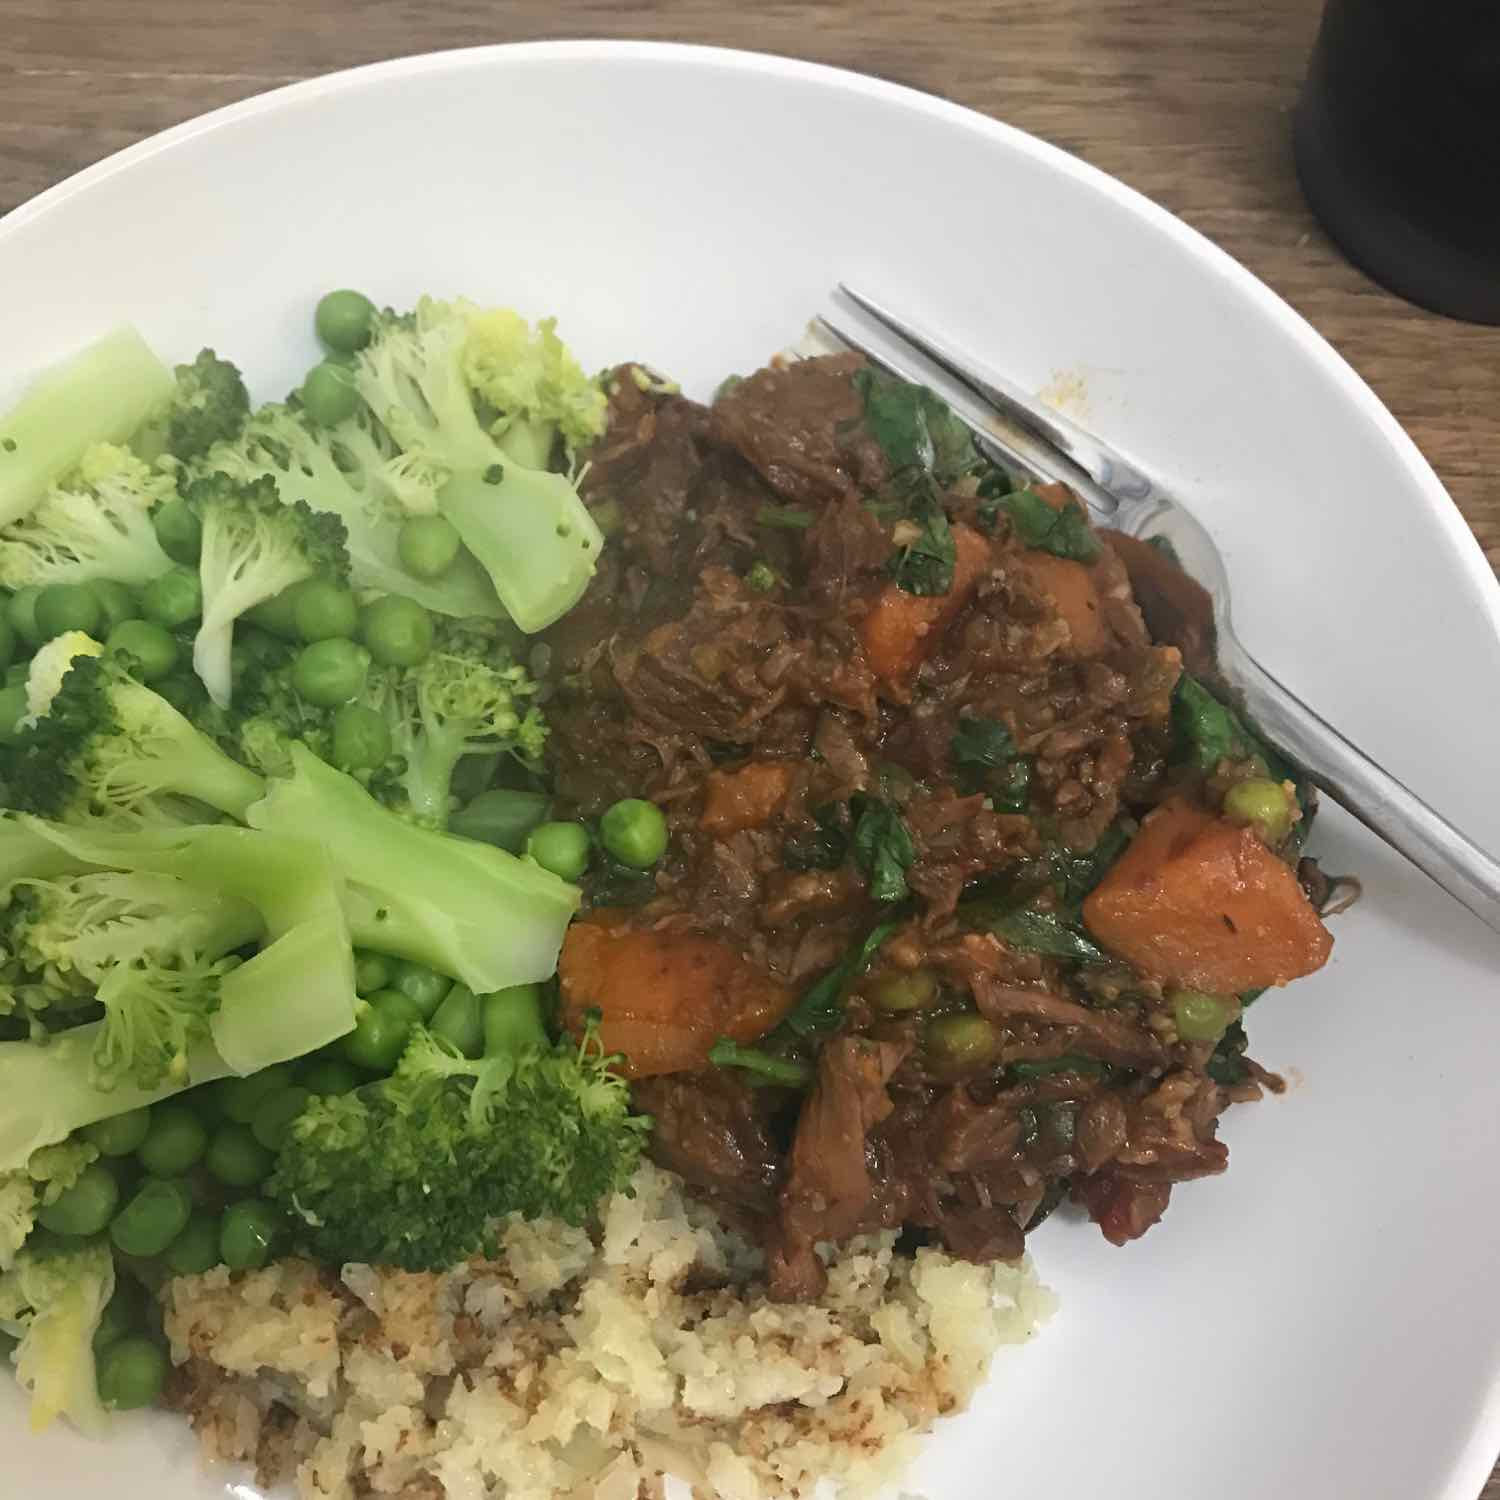 Yummy slow cooked beef stew for one